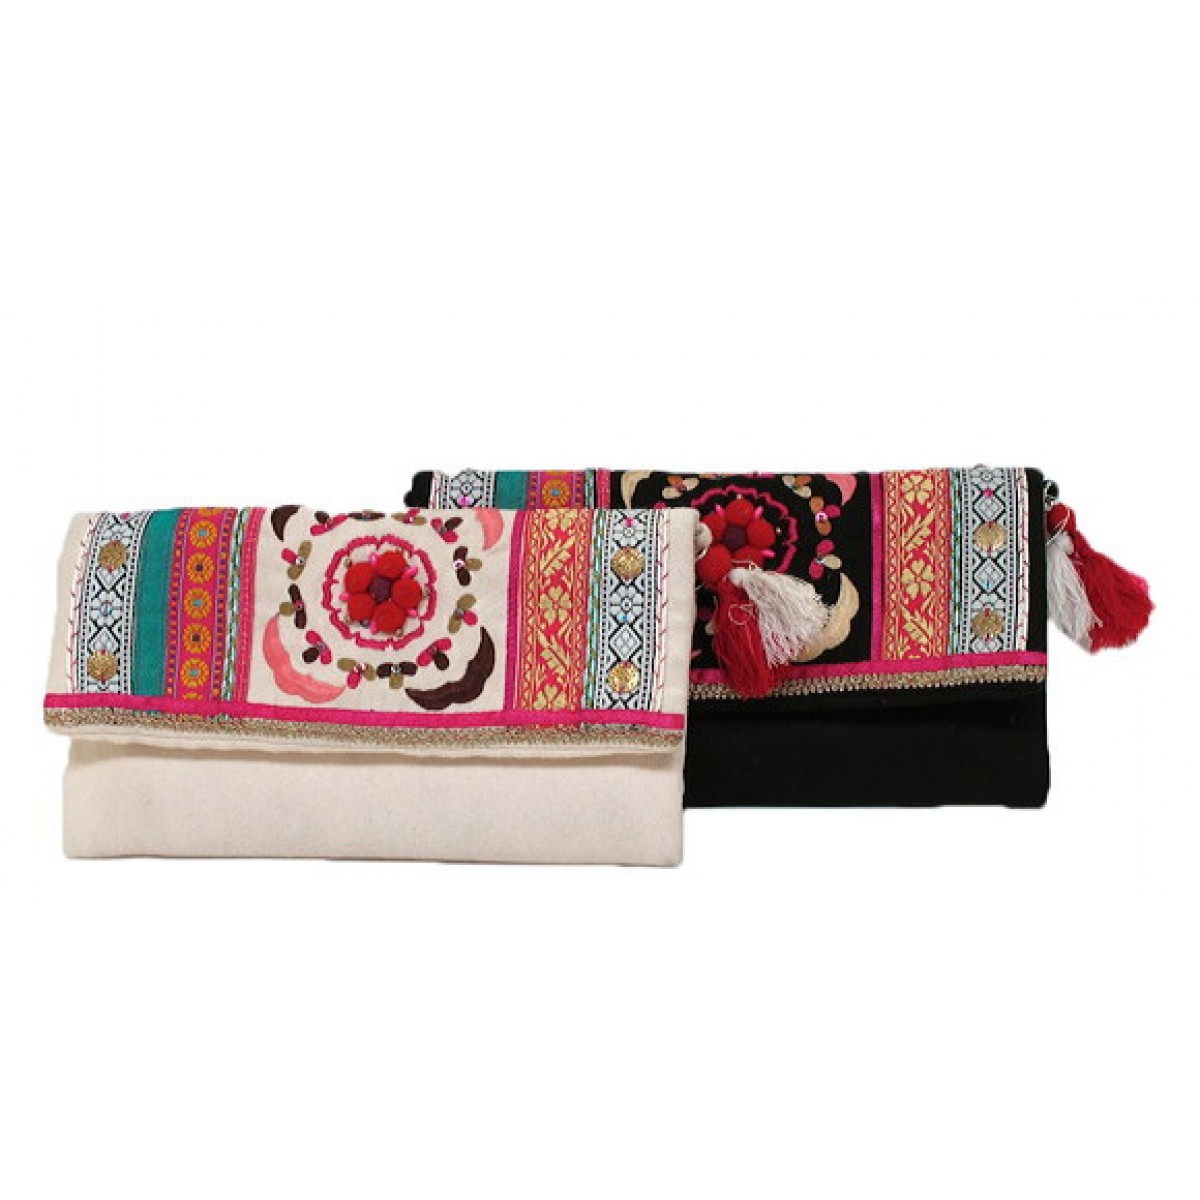 Floral Embroidery Clutch